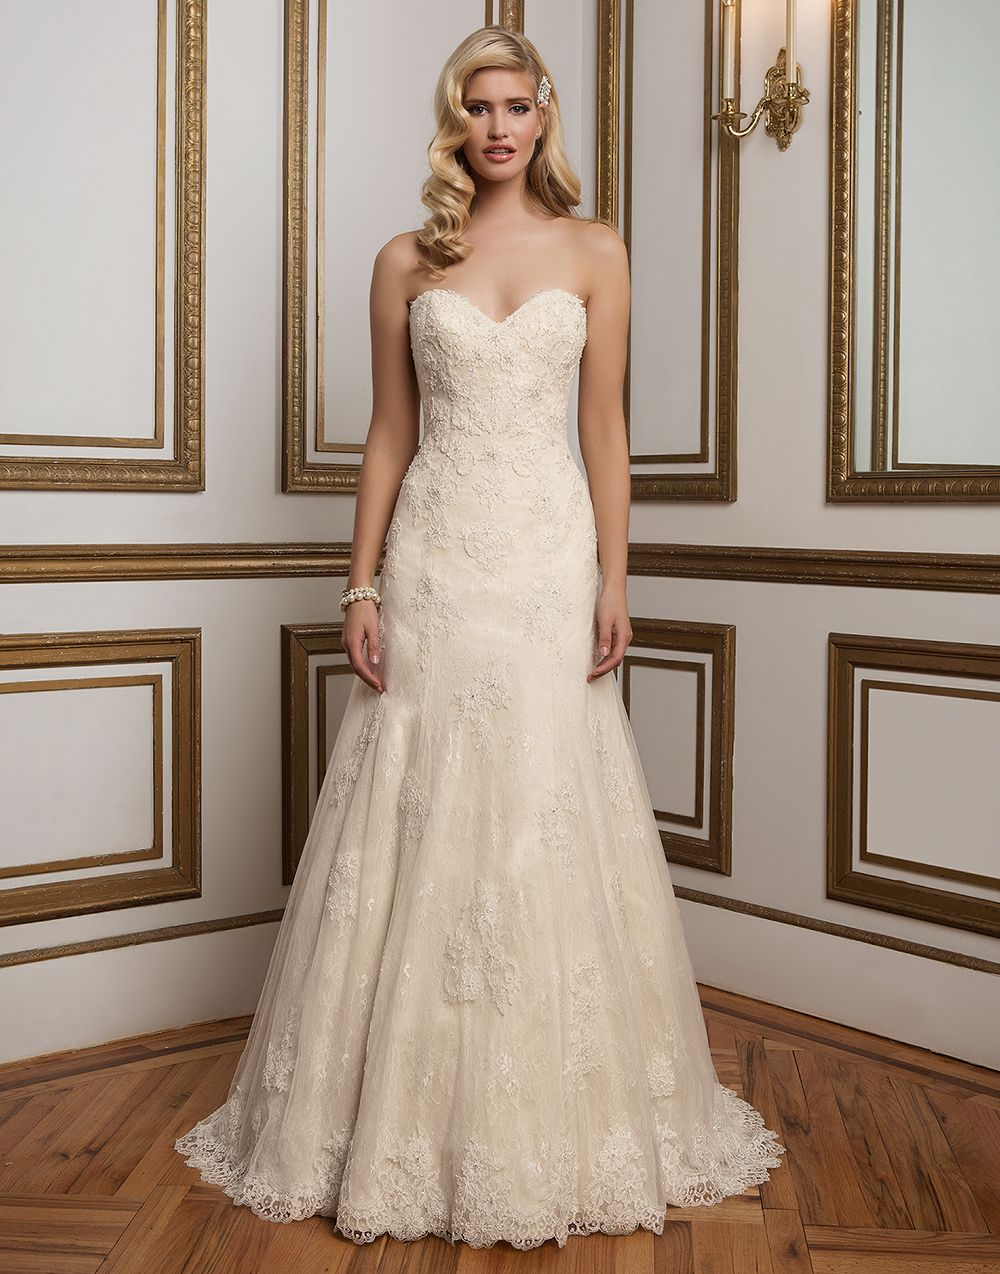 Justin alexander wedding dresses style lace wedding dress